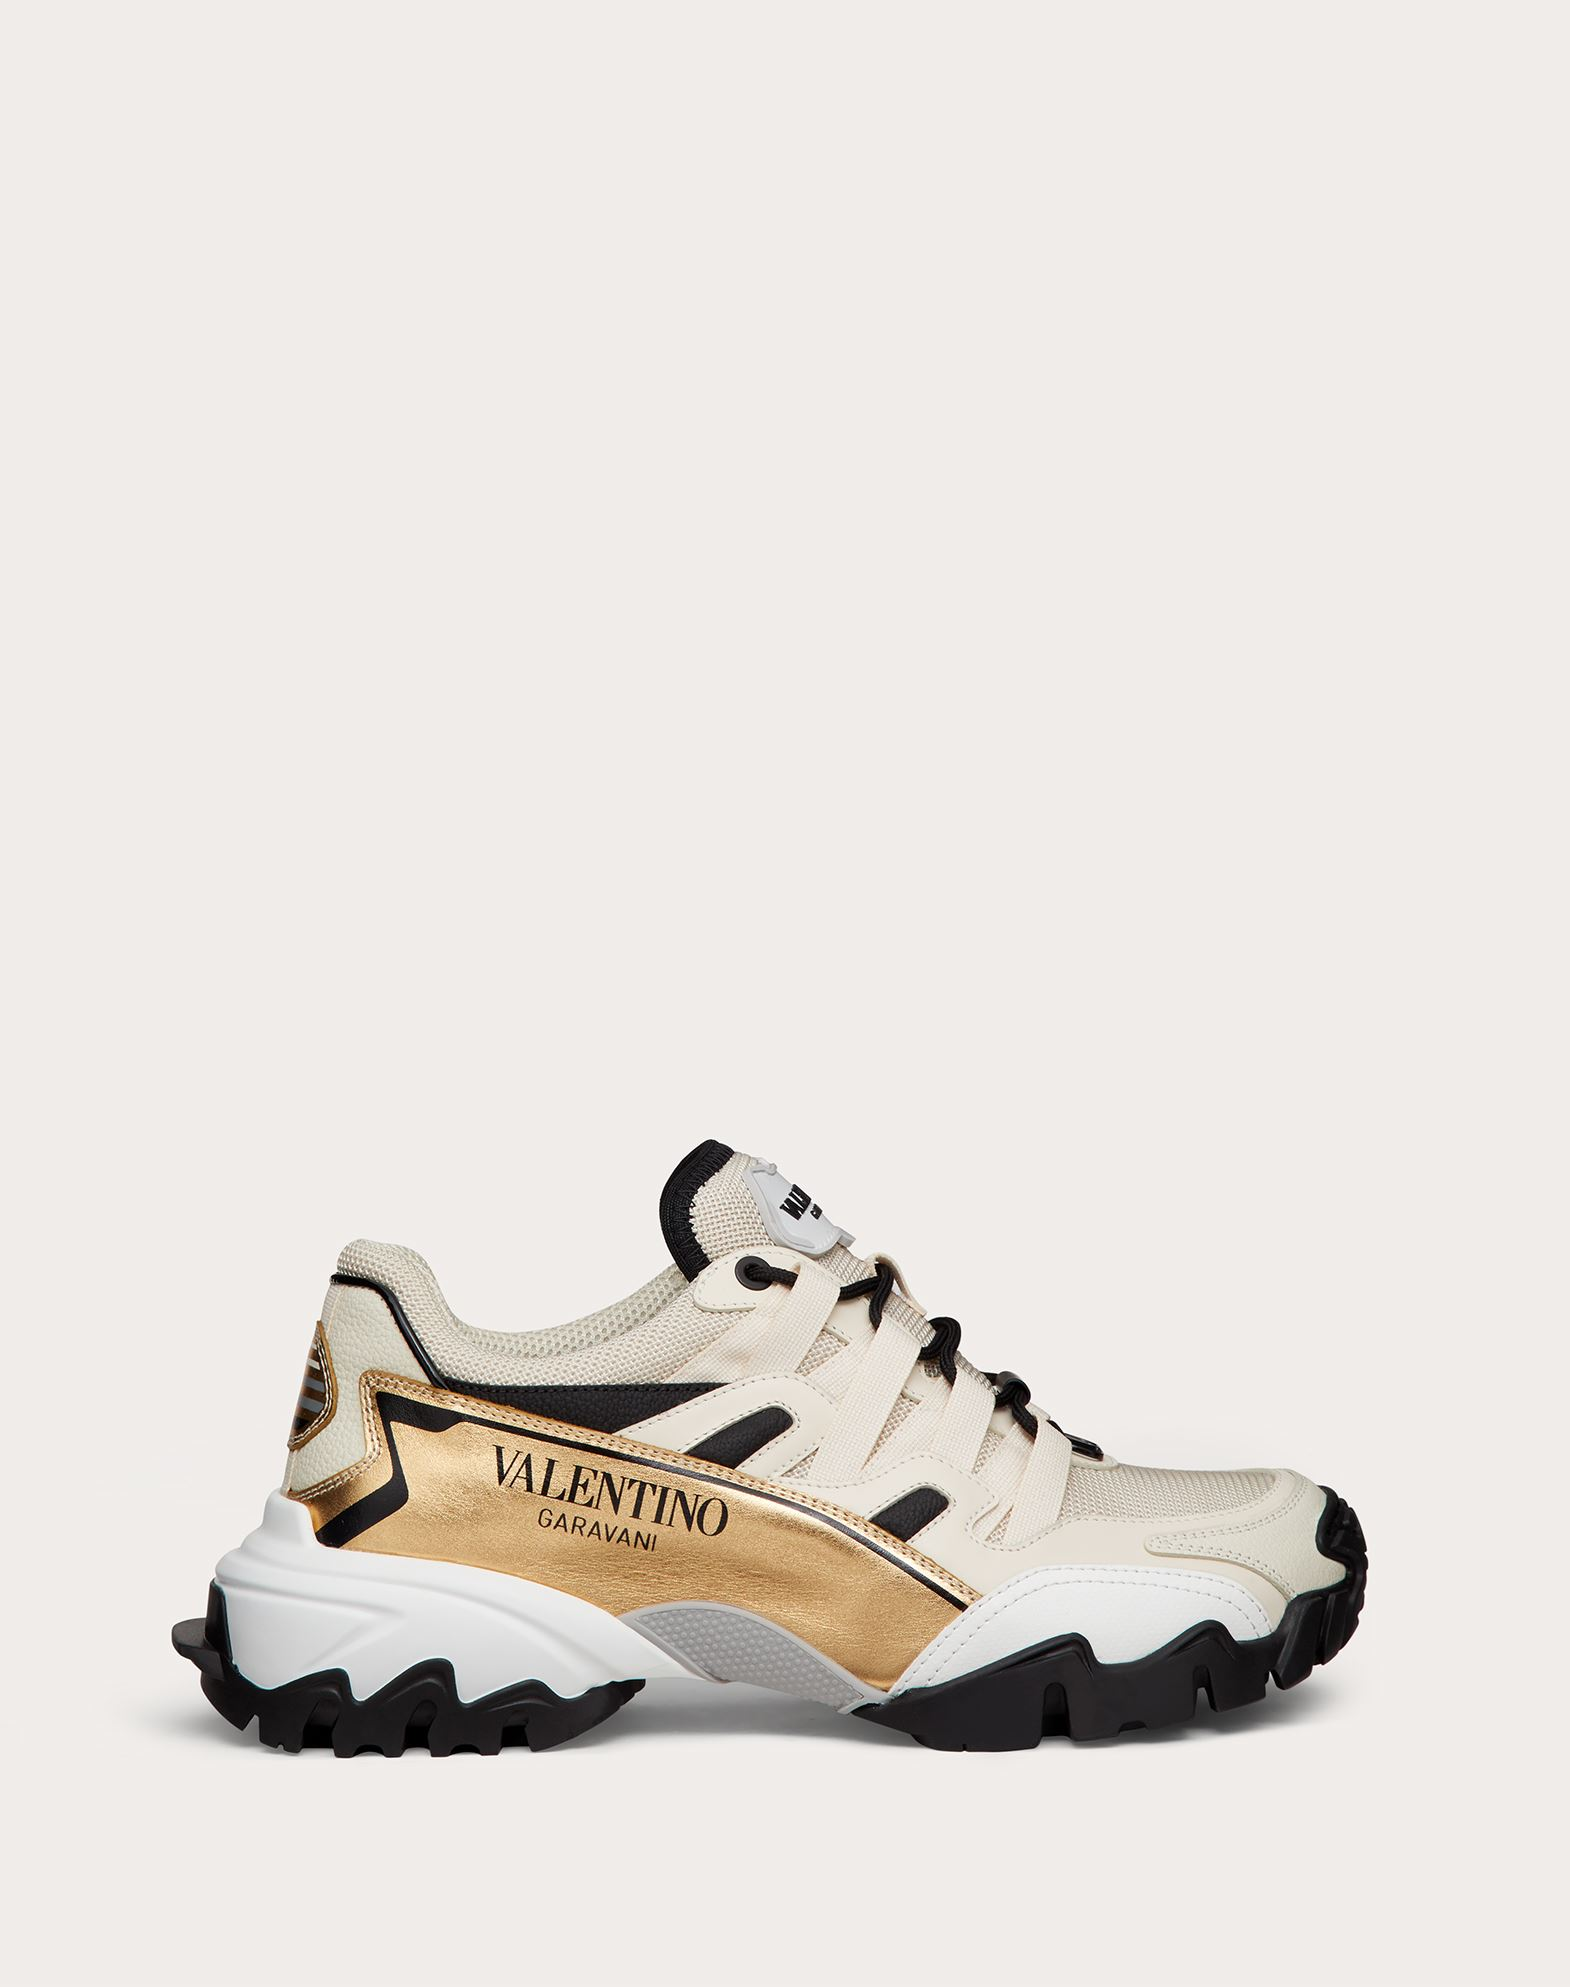 Valentino VALENTINO GARAVANI VALENTINO GARAVANI CLIMBERS SNEAKER IN FABRIC AND CALFSKIN LEATHER